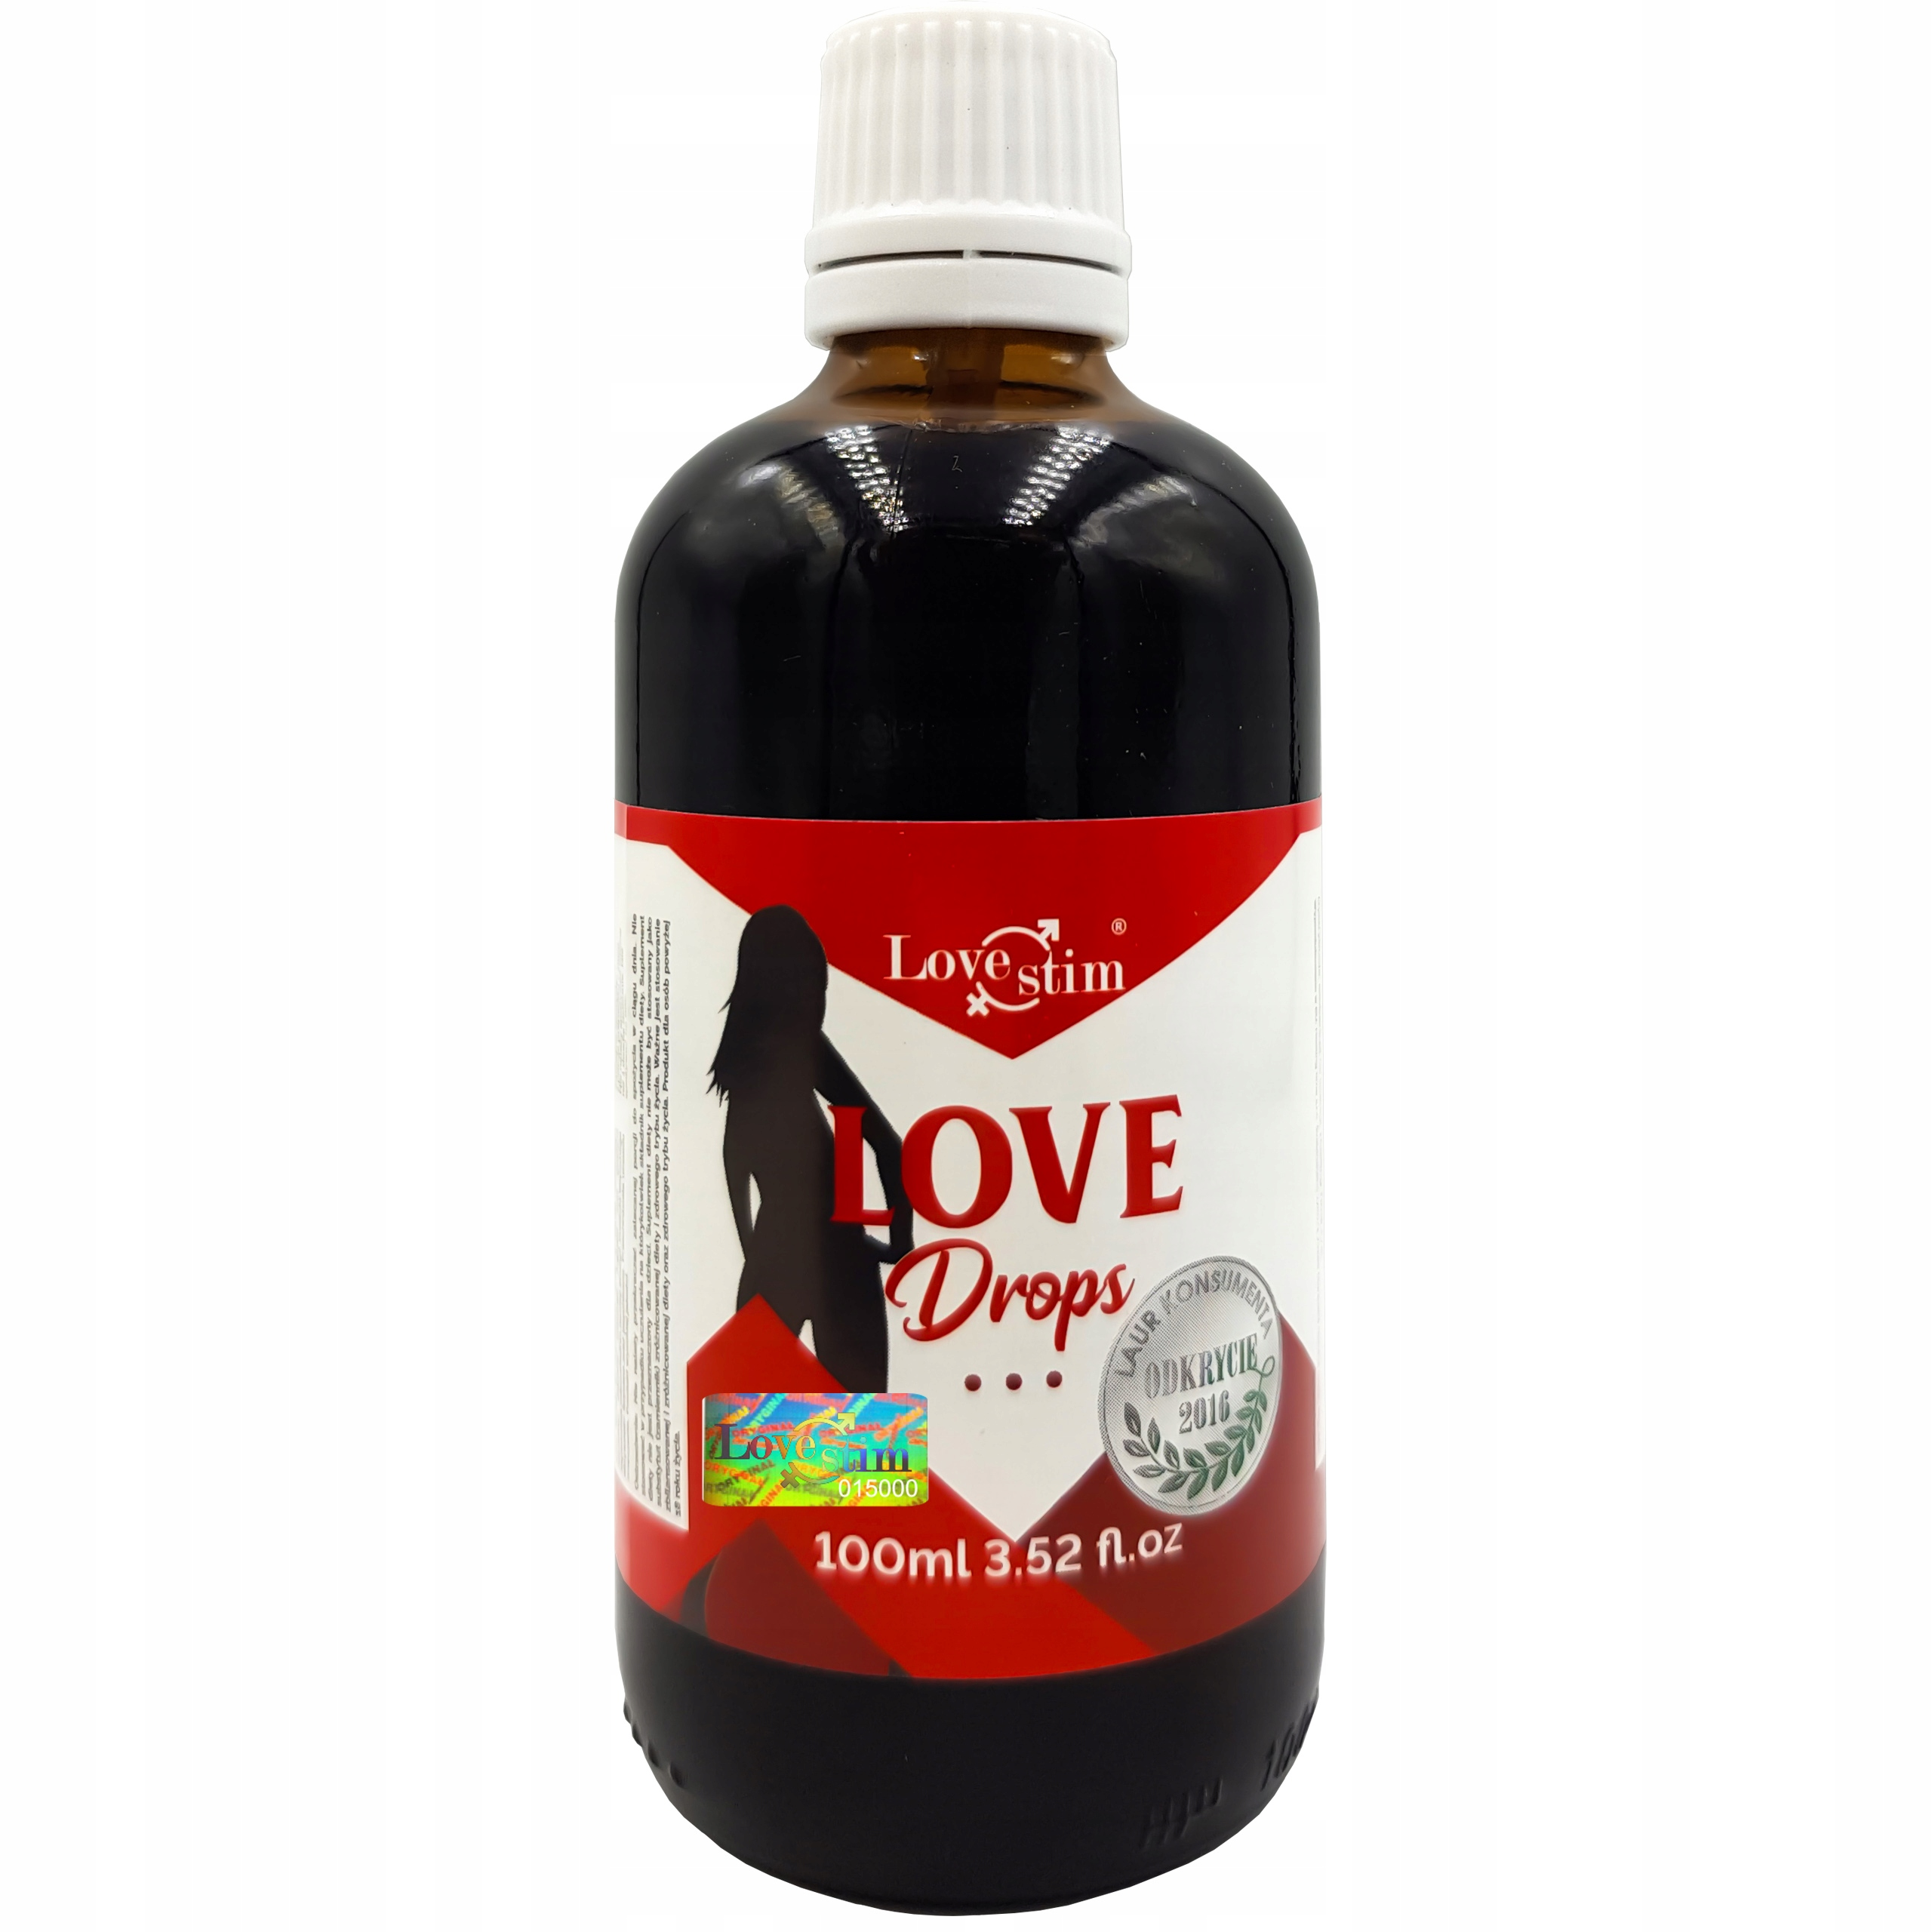 Item Love Drops are a very strong stimulating drops 100ml